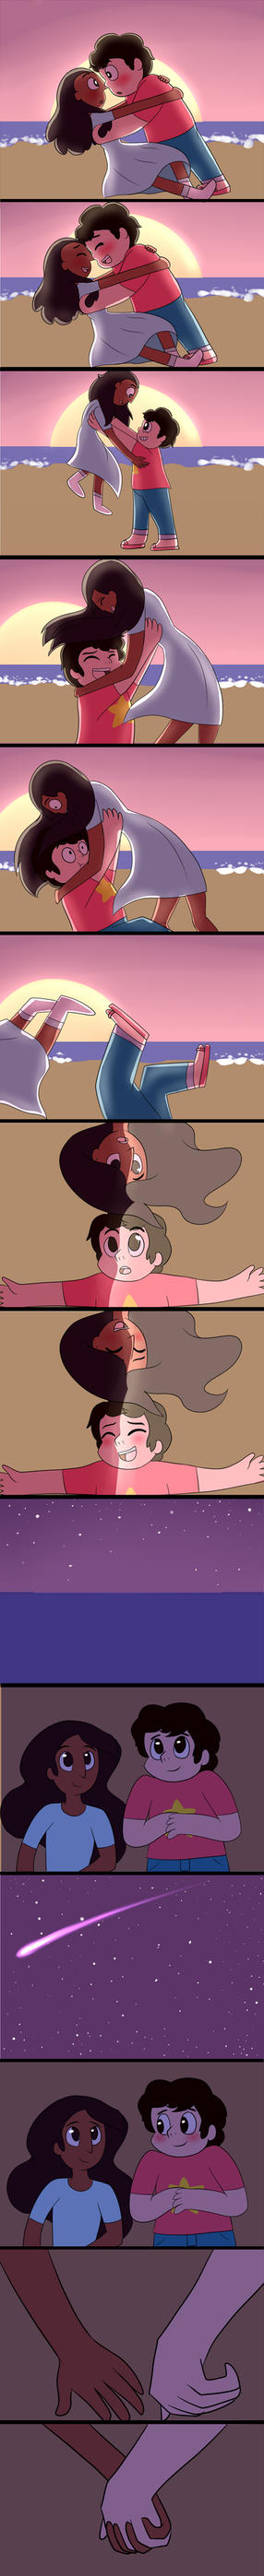 Steven x Connie fan comic!! by Le-Poofe